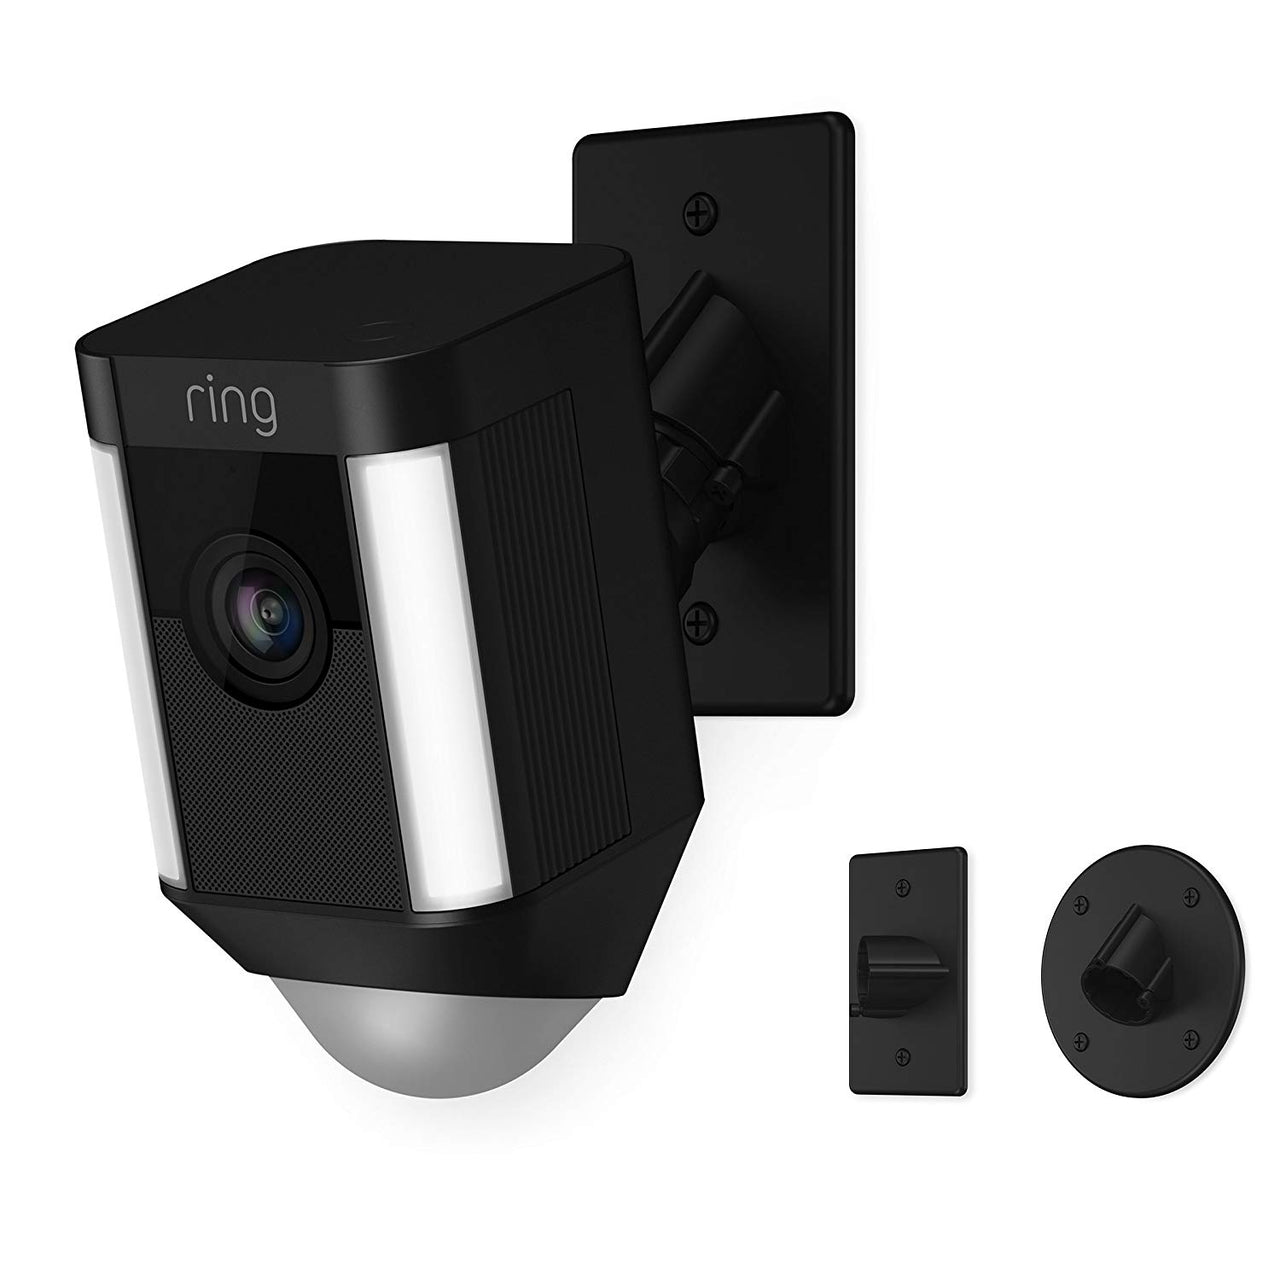 Ring Spotlight Cam Mount HD Security Camera - Black